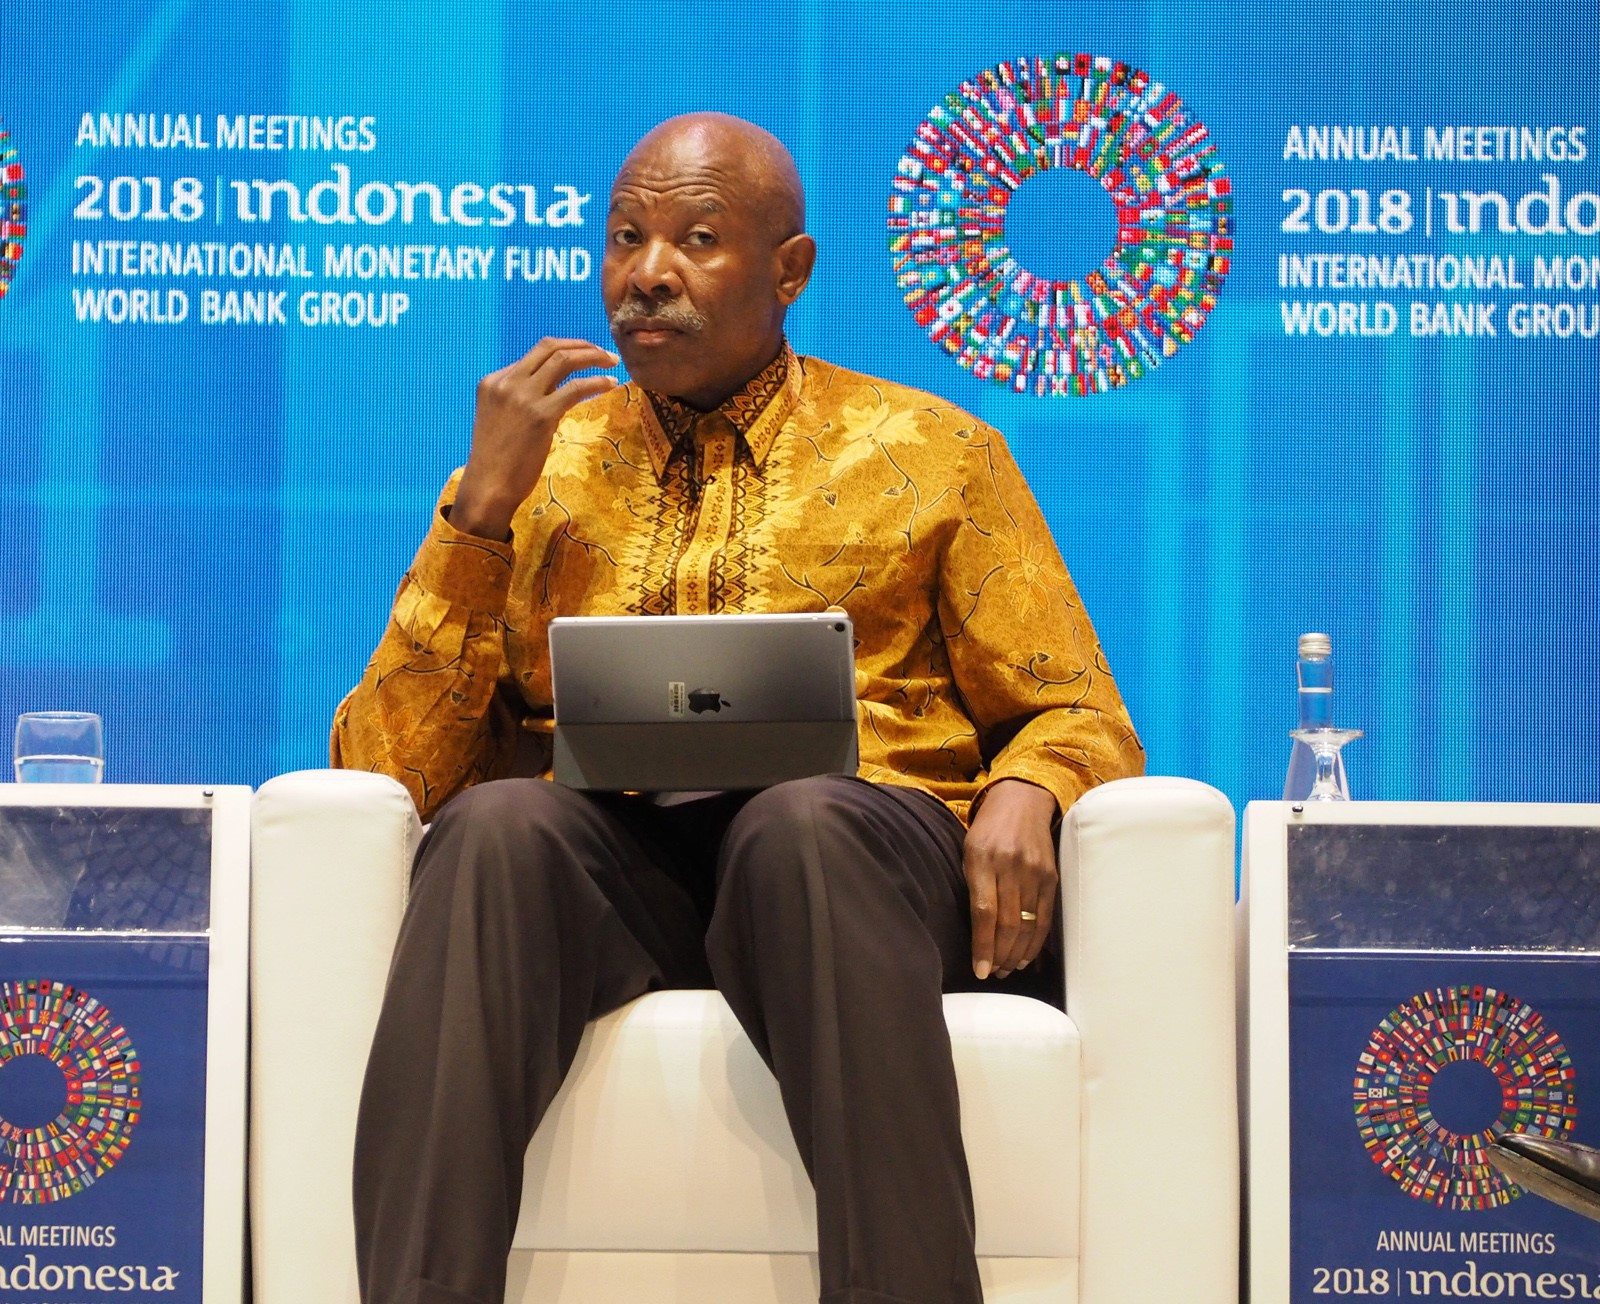 The Big Asks Africa Needs to Table with the IMF and World Bank: Here's the List